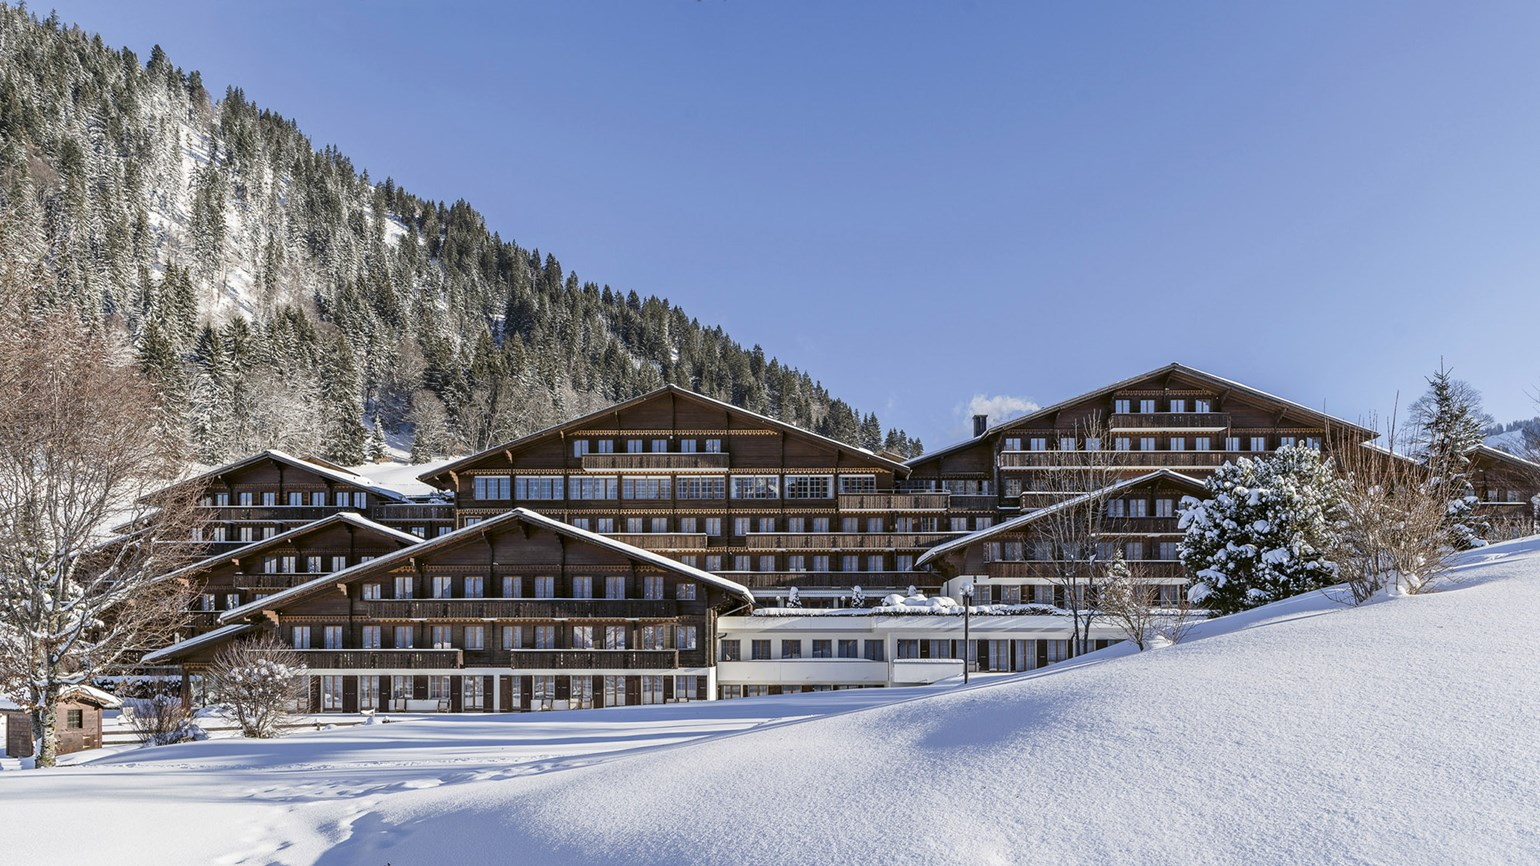 Apres-ski the Swiss way at Huus Gstaad